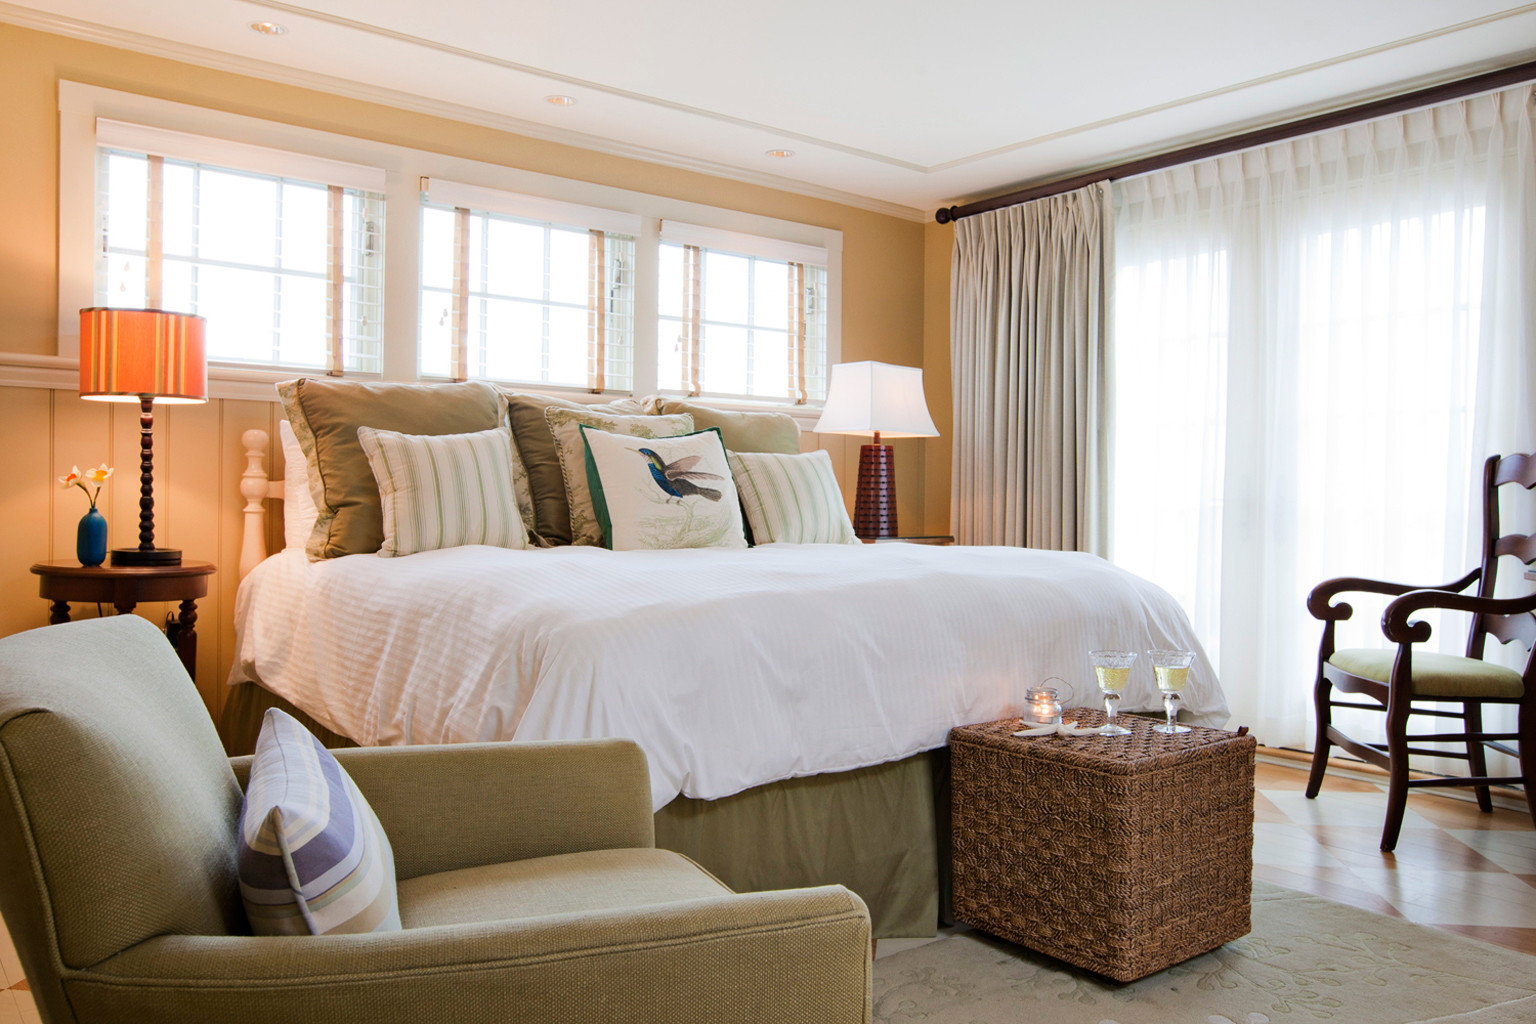 B&B Bedroom Boutique Waterfront chair property Suite living room home cottage condominium